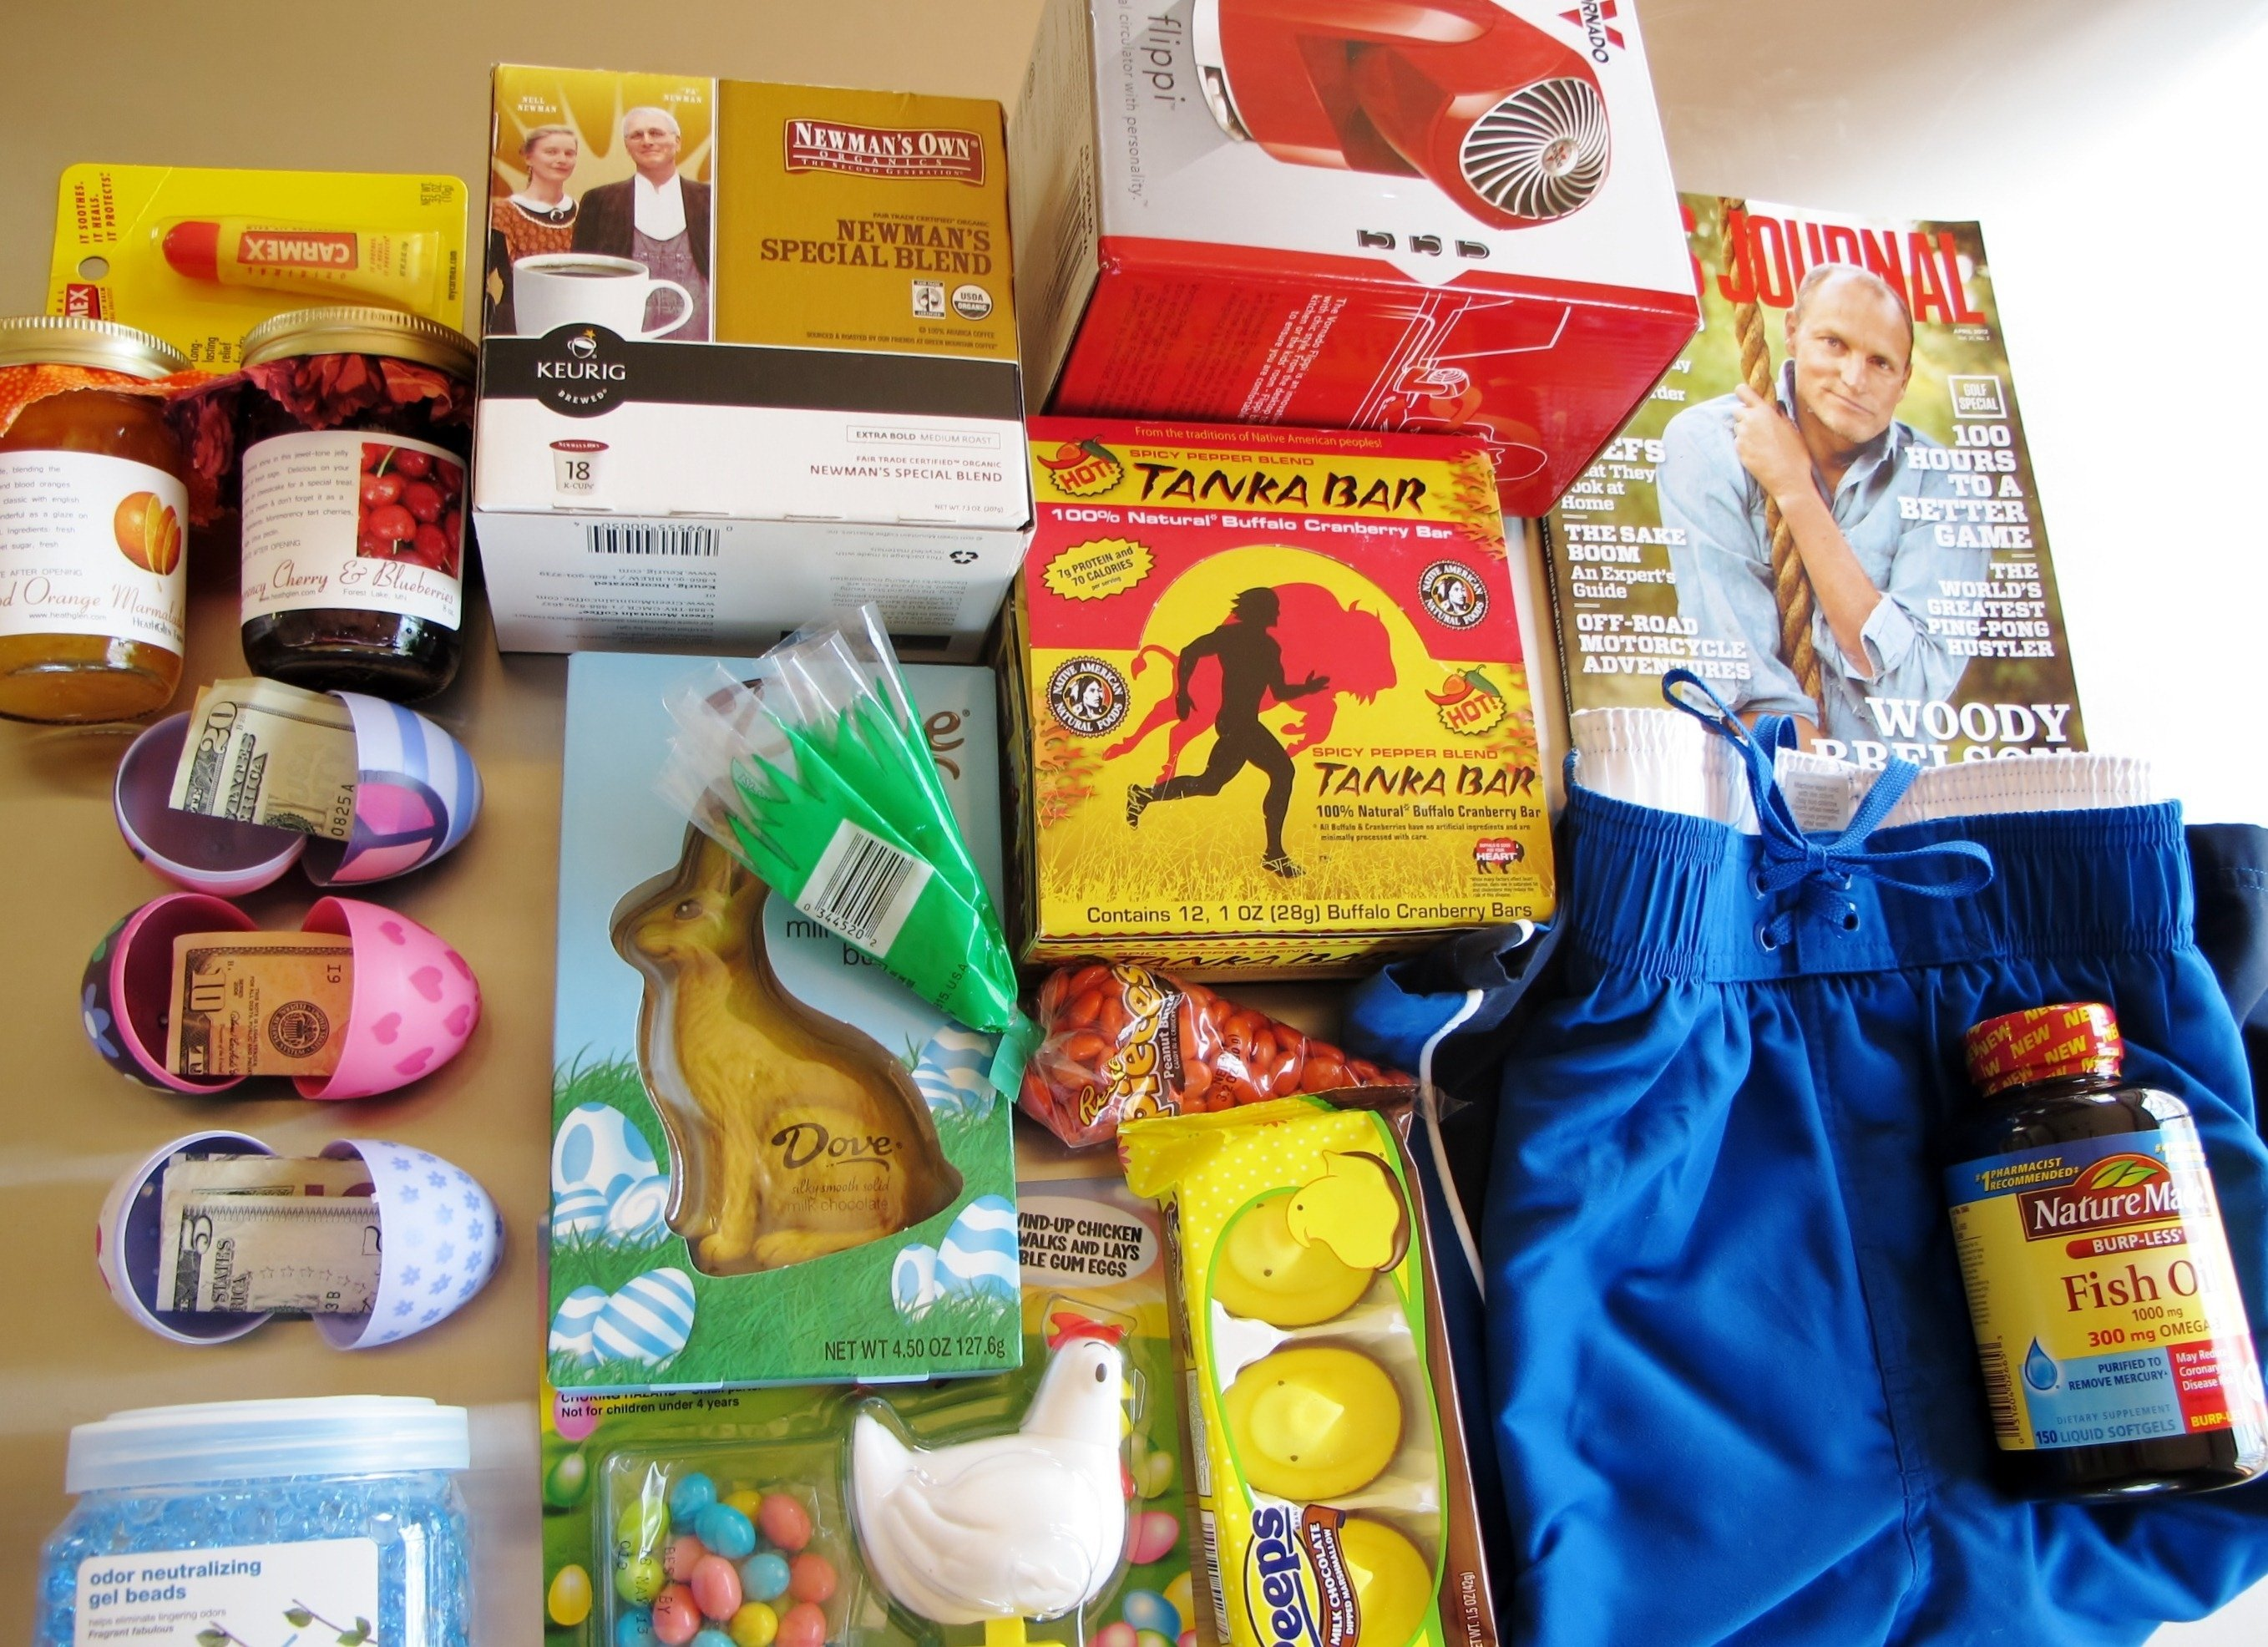 10 Fabulous Ideas For College Care Packages easter care package farm to jar food 2